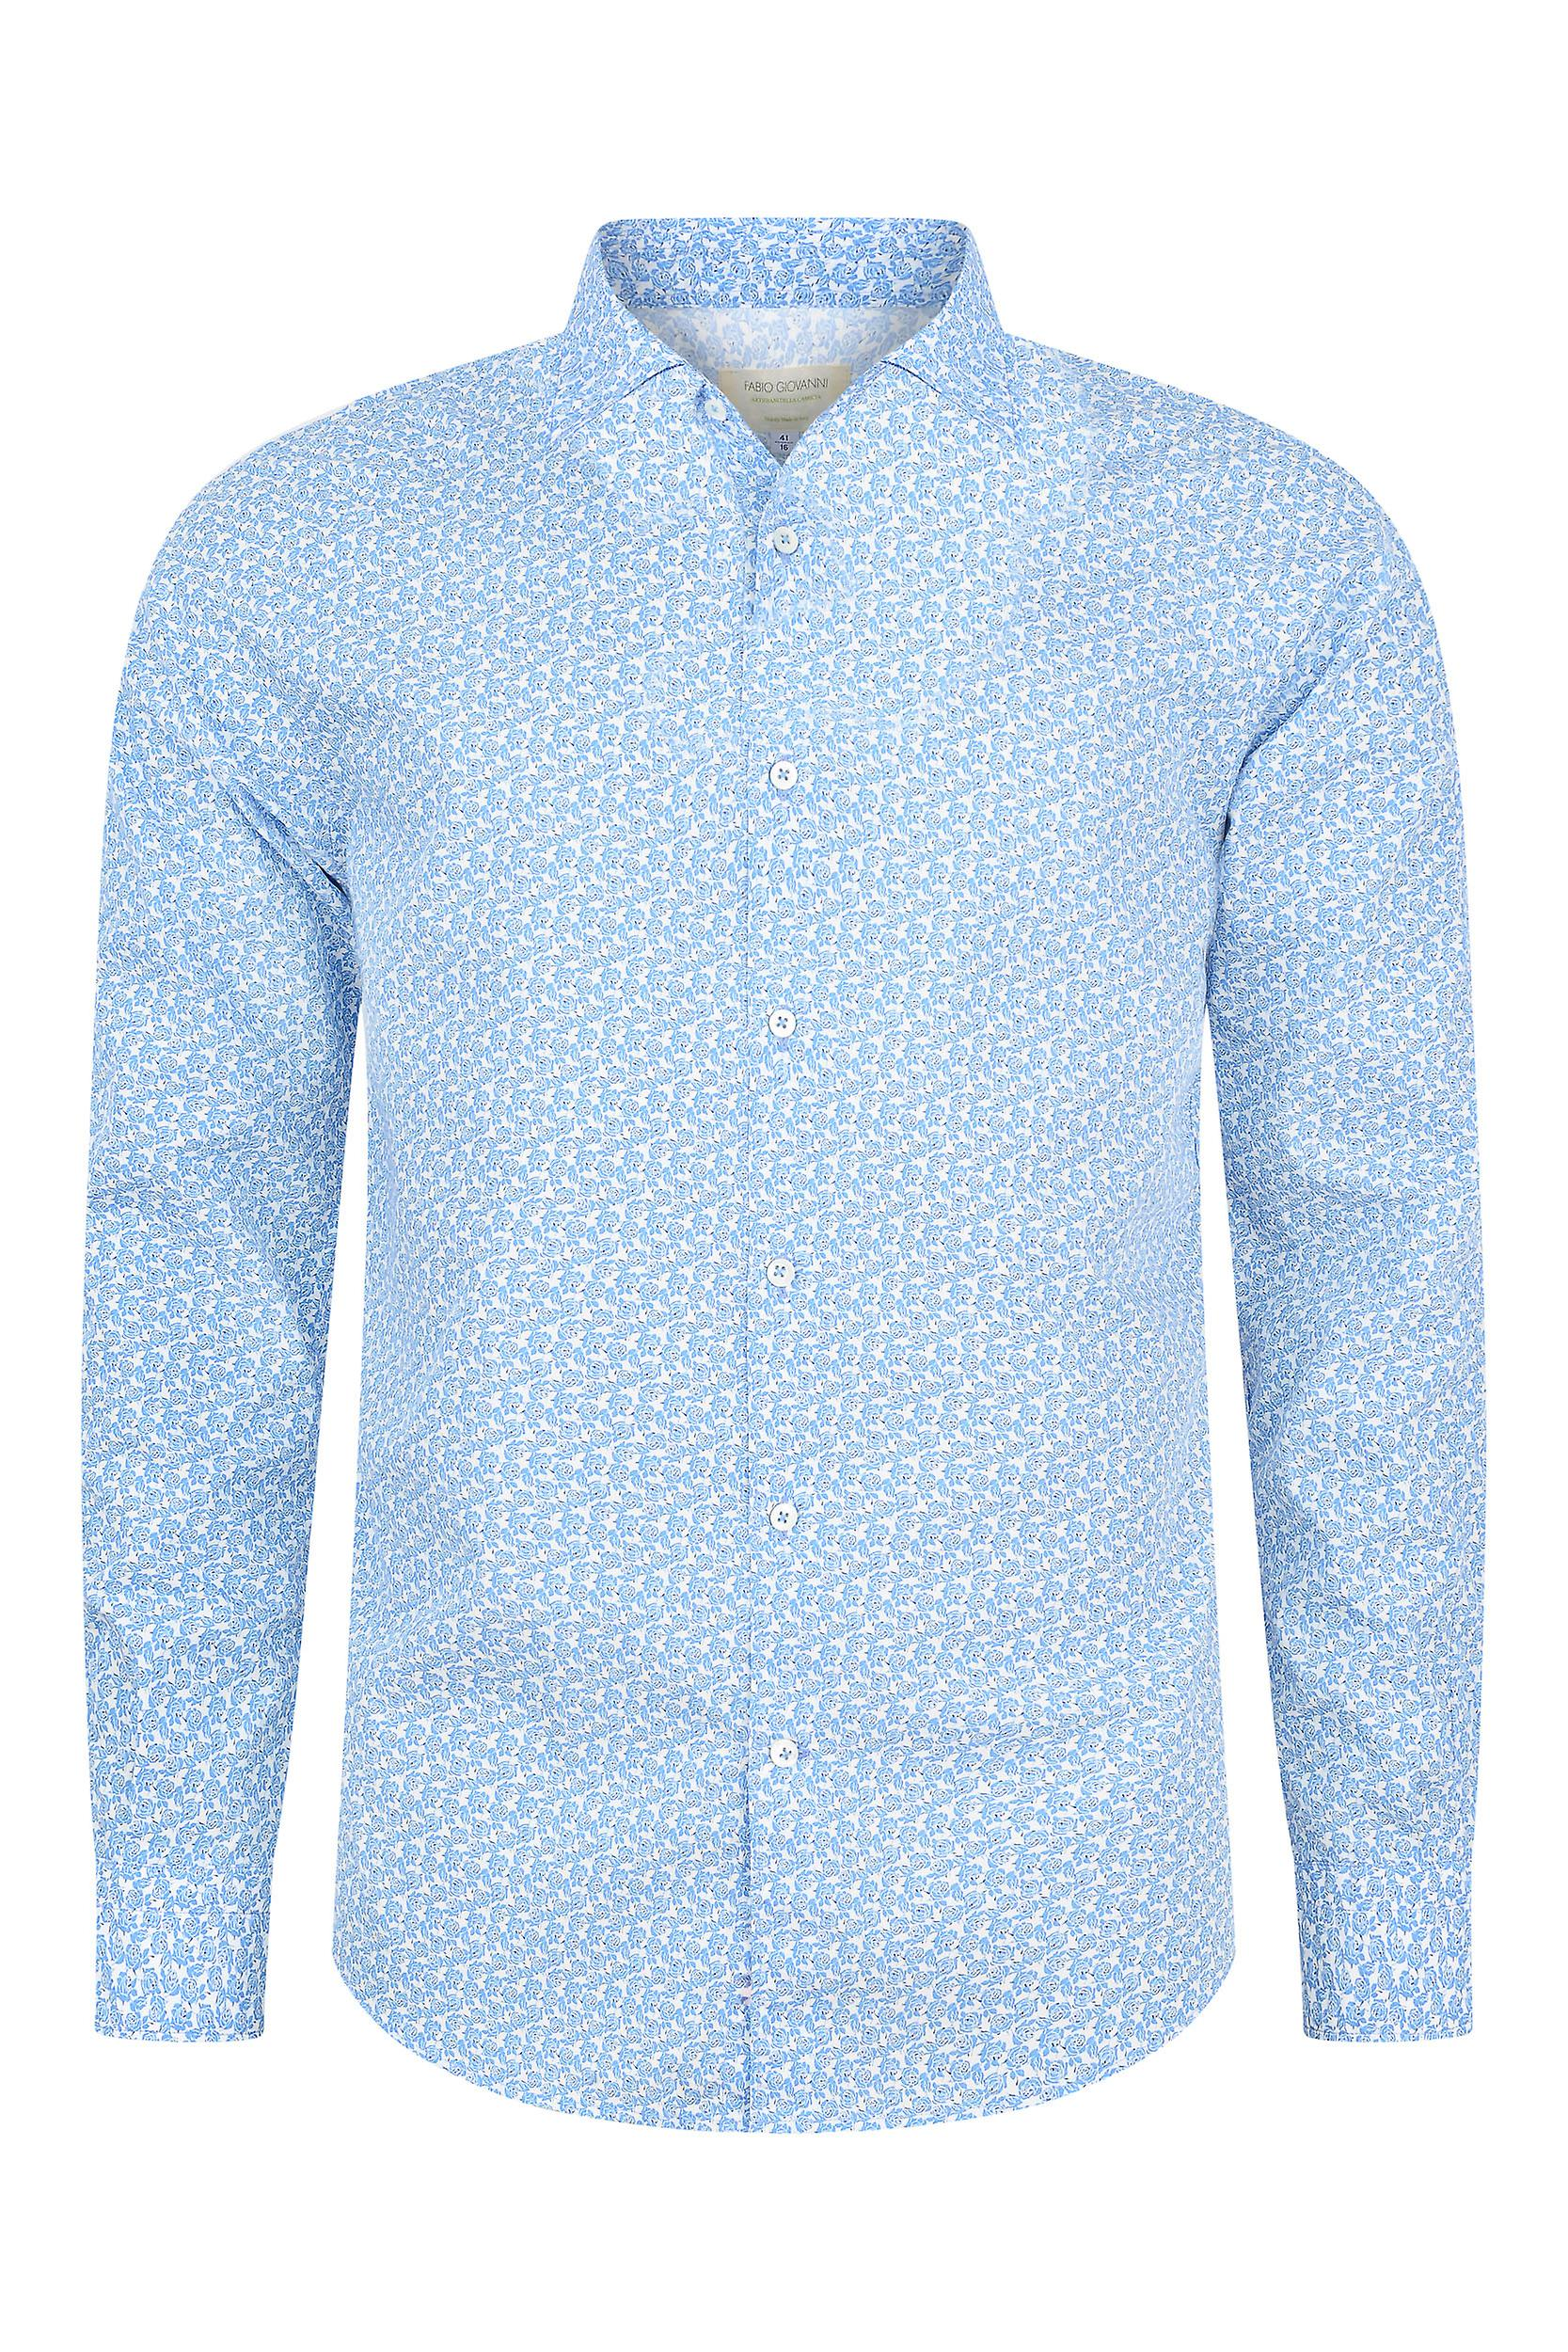 Fabio Giovanni Lucani Shirt - Mens Italian Casual Stylish Floral Shirt - Long Sleeve